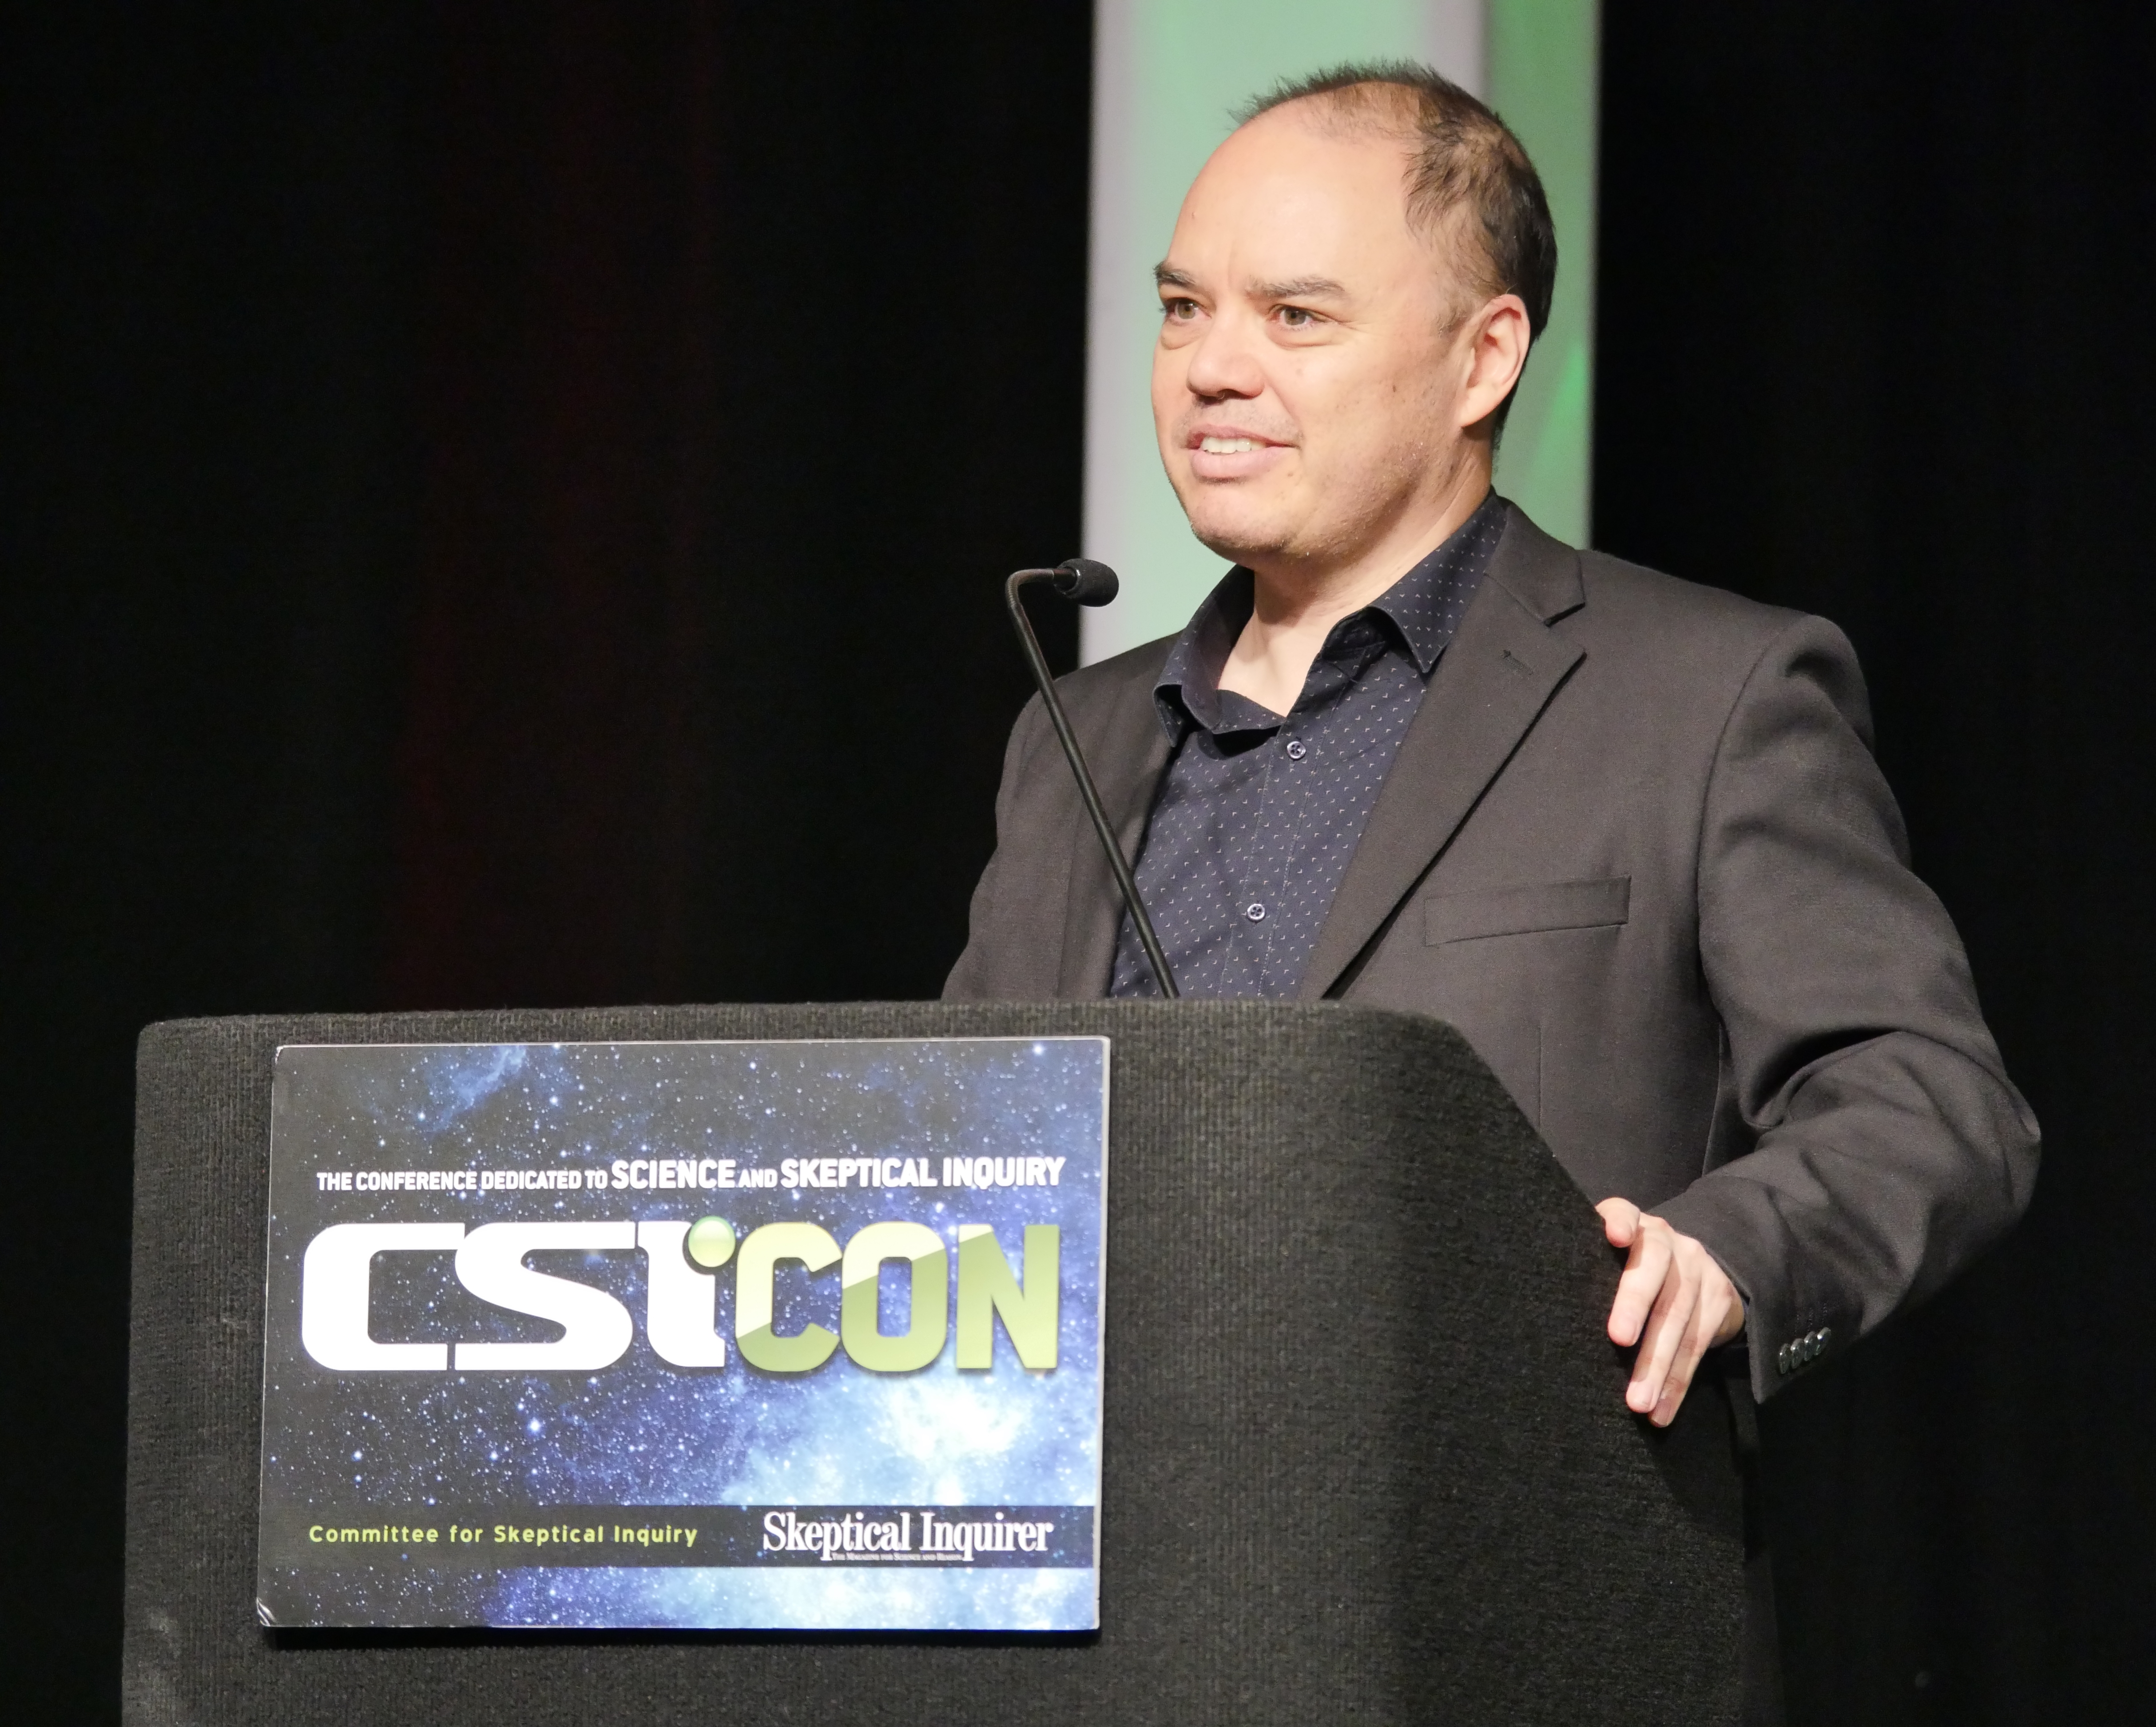 John Cook CSICon 2018 Taking on Fake News About Climate Change